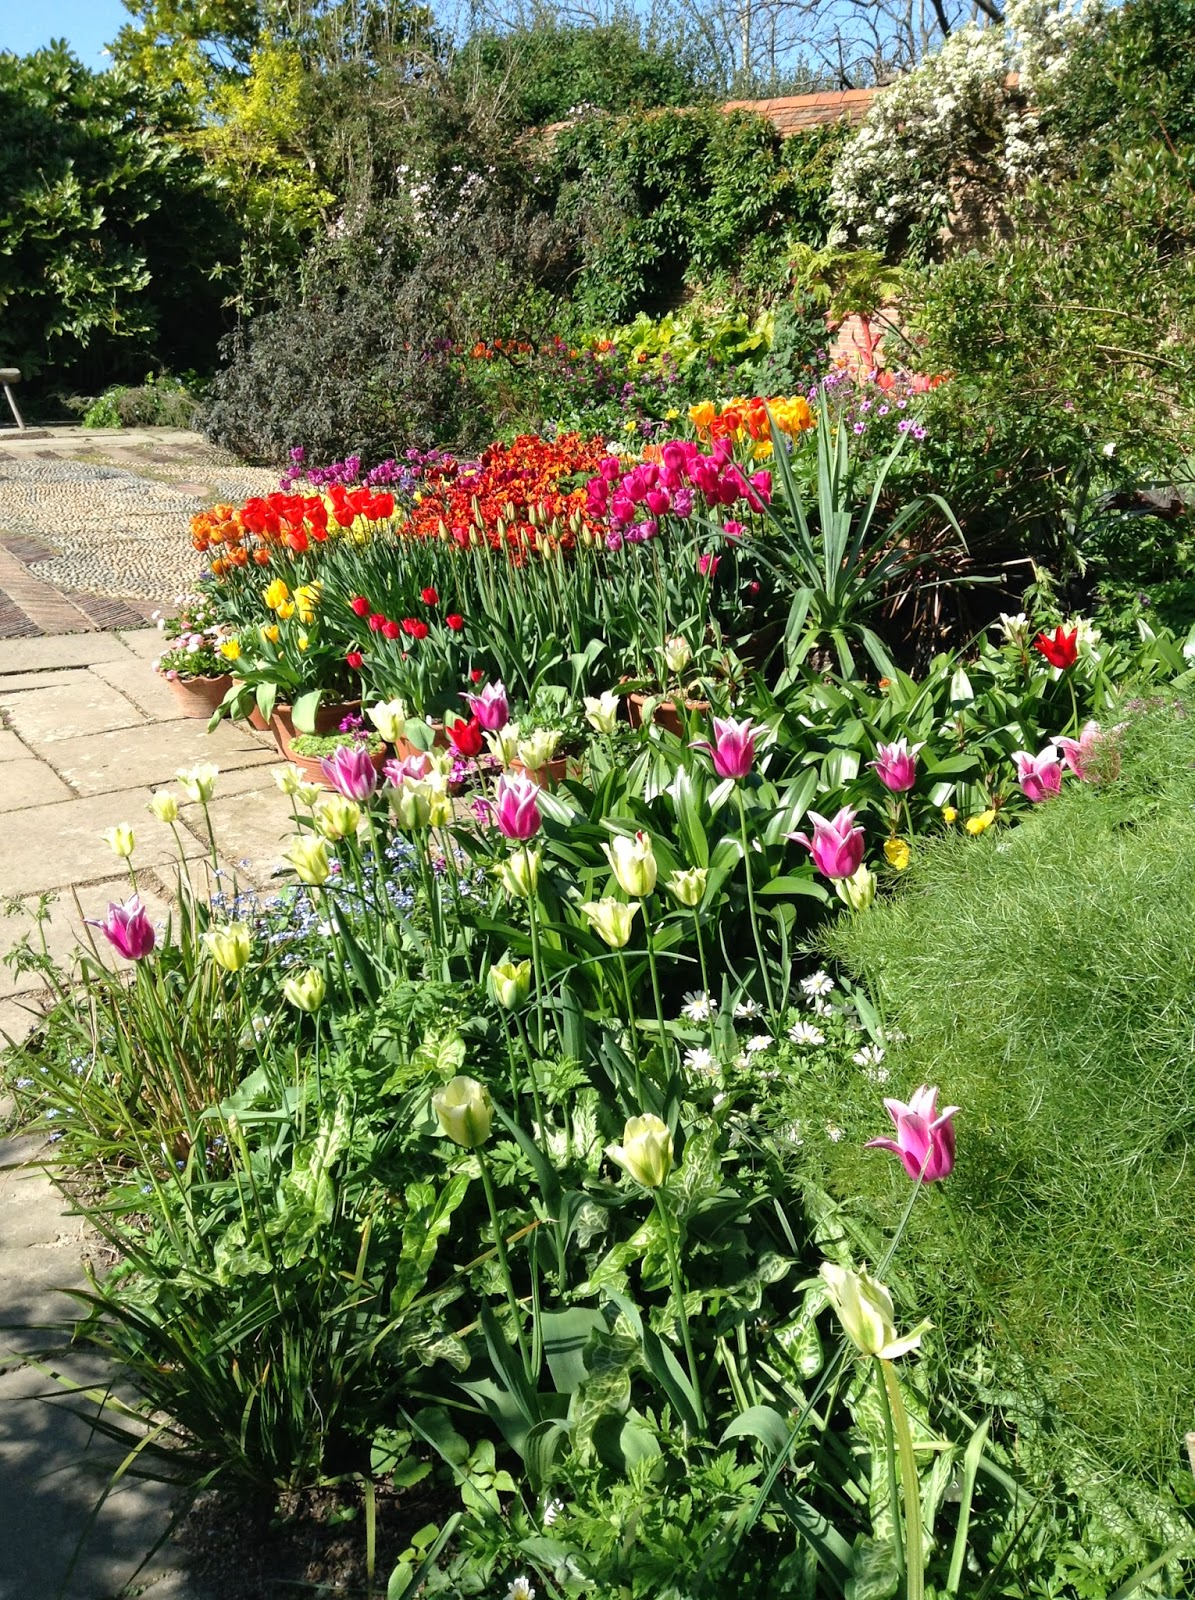 Great Dixter Wall Garden Tulip Pots Display - Photo by Noemi Mercurelli